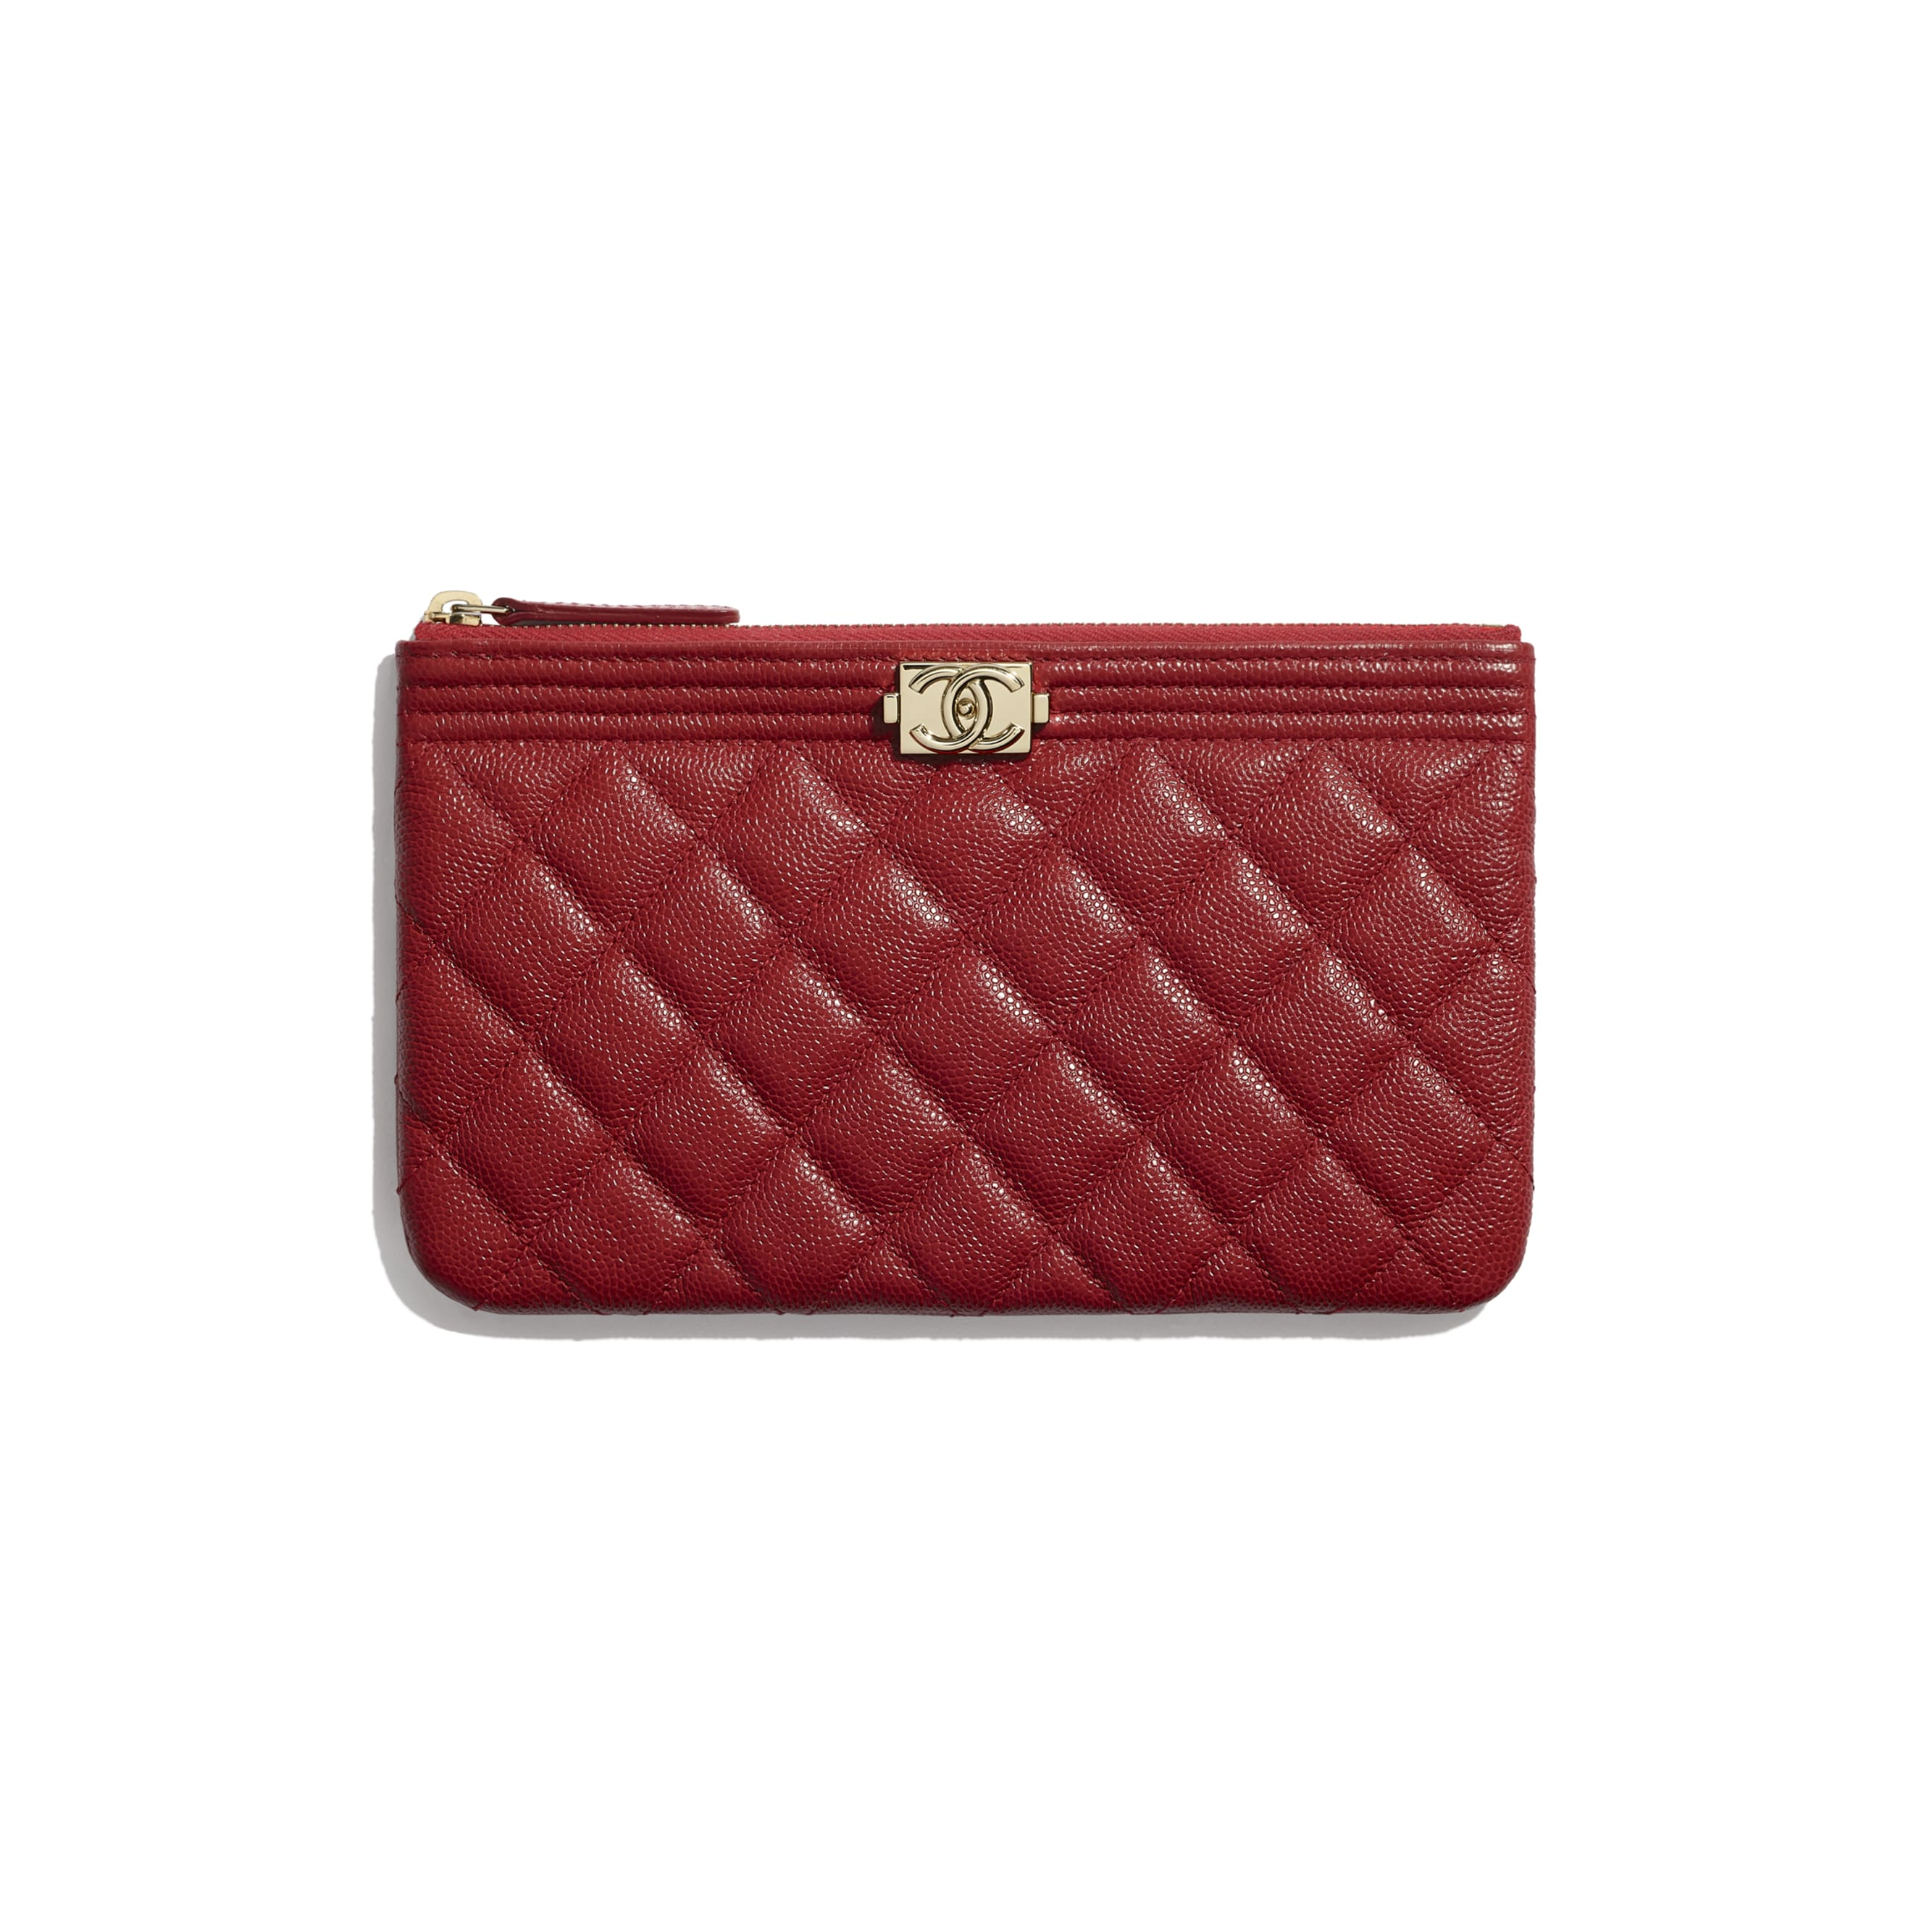 BOY CHANEL Small Pouch - Red - Grained Calfskin & Gold-Tone Metal - CHANEL - Default view - see standard sized version